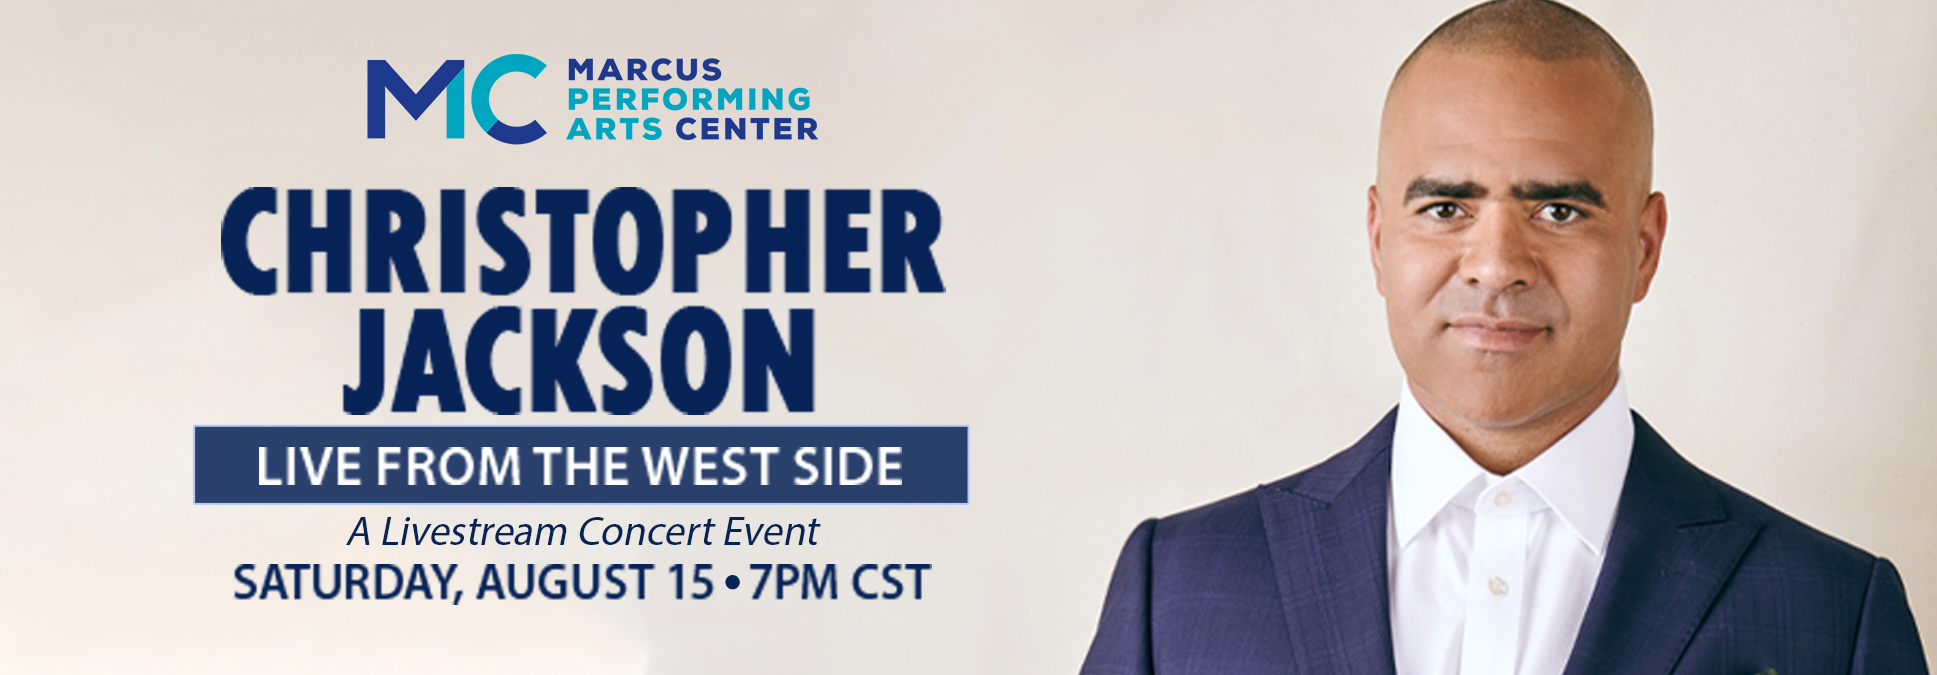 CHRISTOPHER JACKSON LIVE FROM THE WEST SIDE Marcus Center Milwaukee